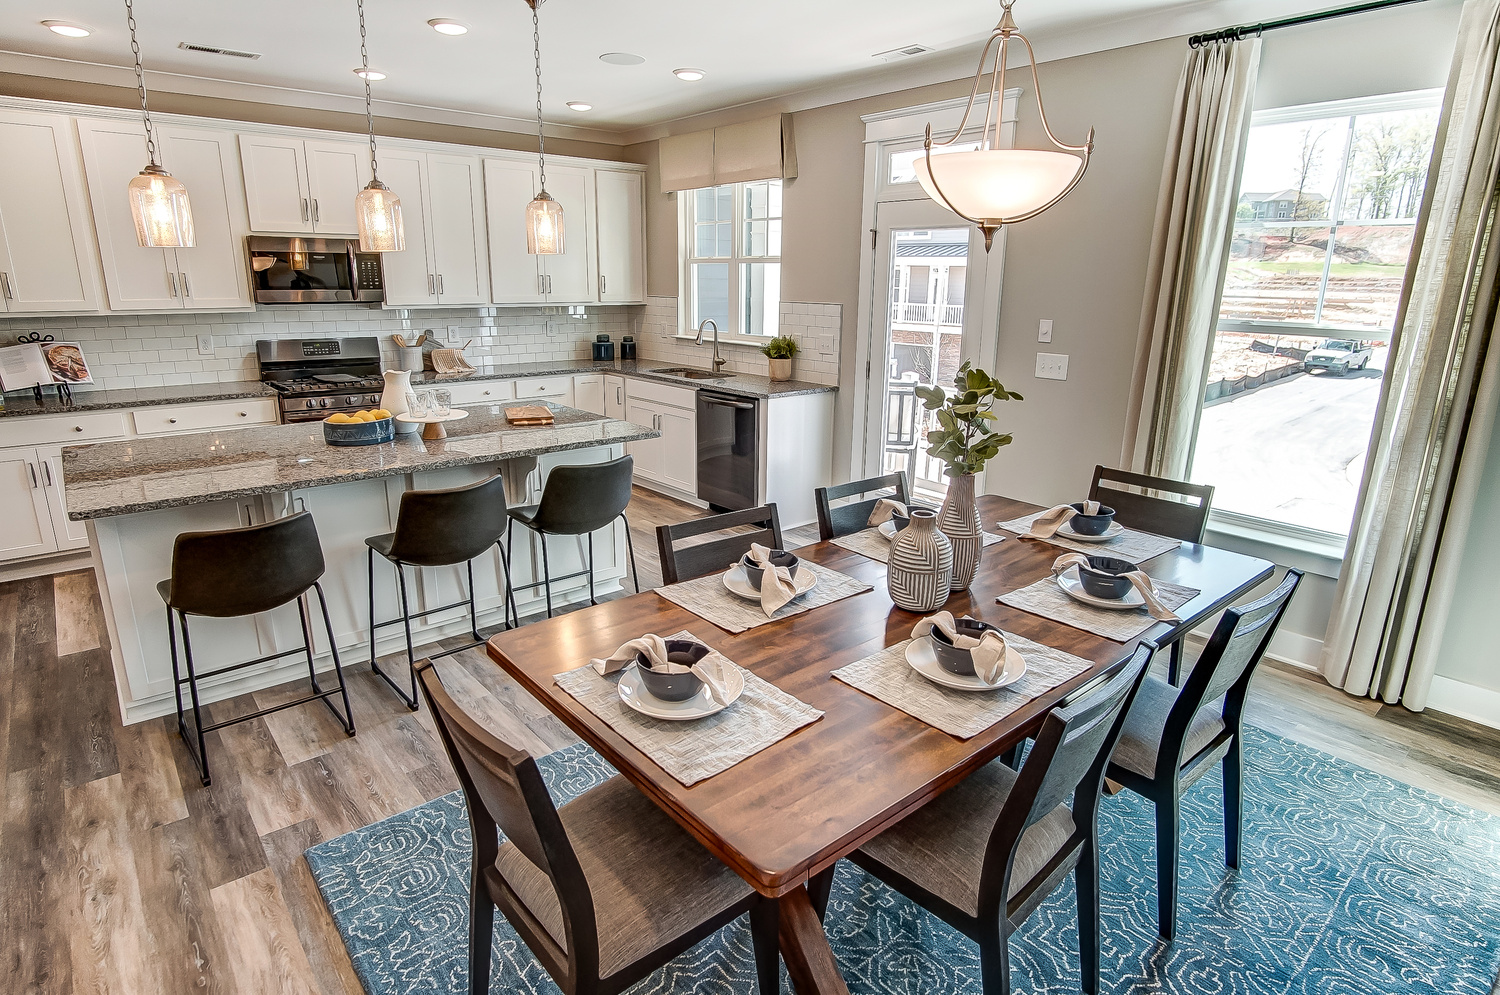 Brantley Kitchen and Dining Area